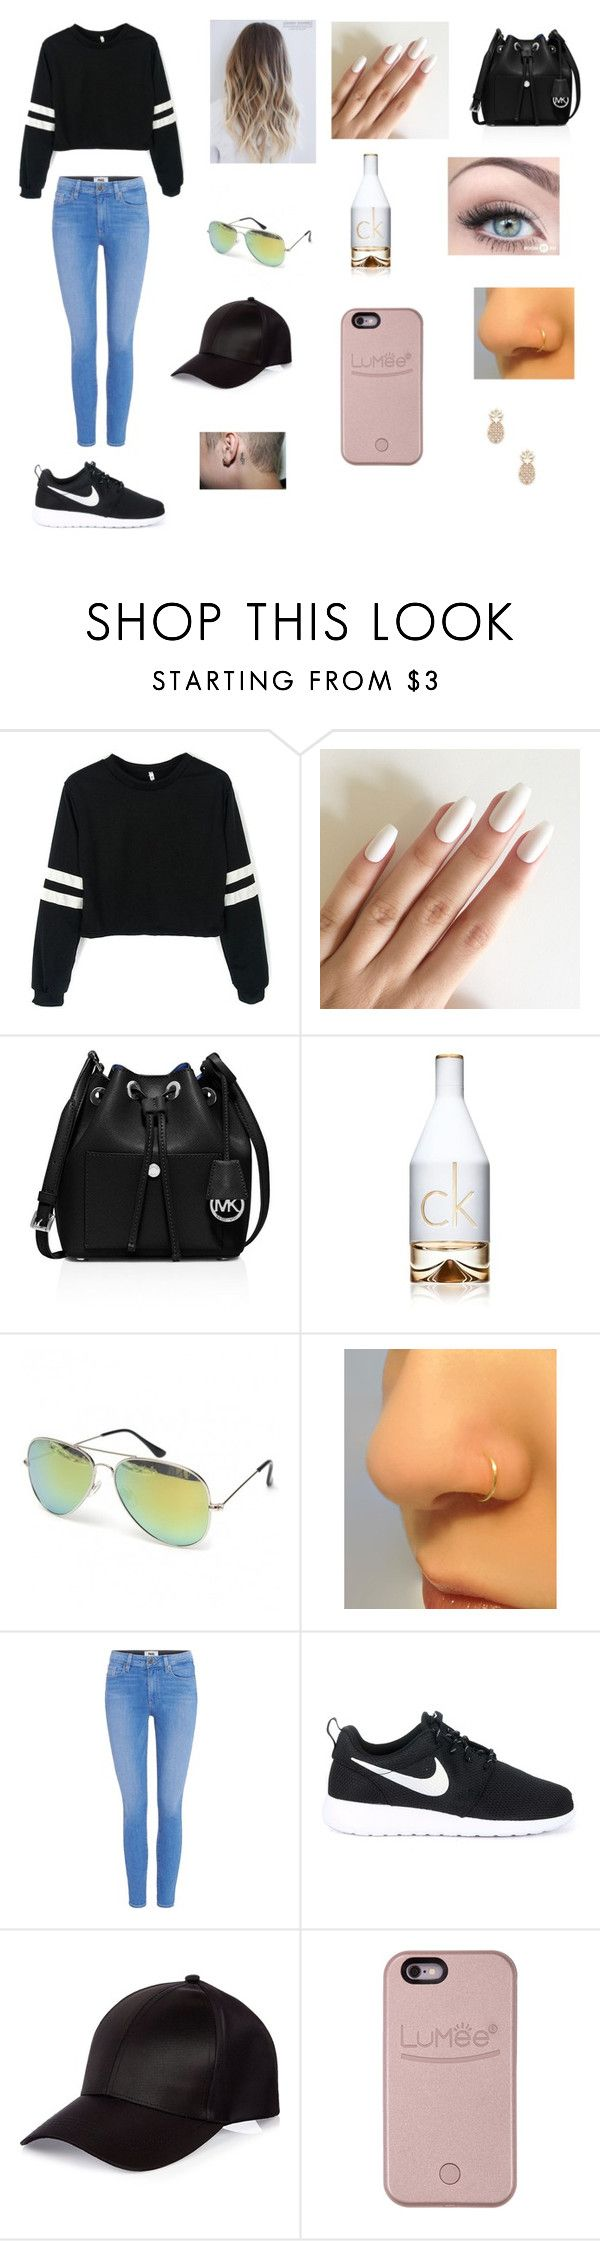 Untitled #226 by katrine-frid on Polyvore featuring Paige Denim, NIKE, MICHAEL Michael Kors, Sole Society, River Island and Calvin Klein